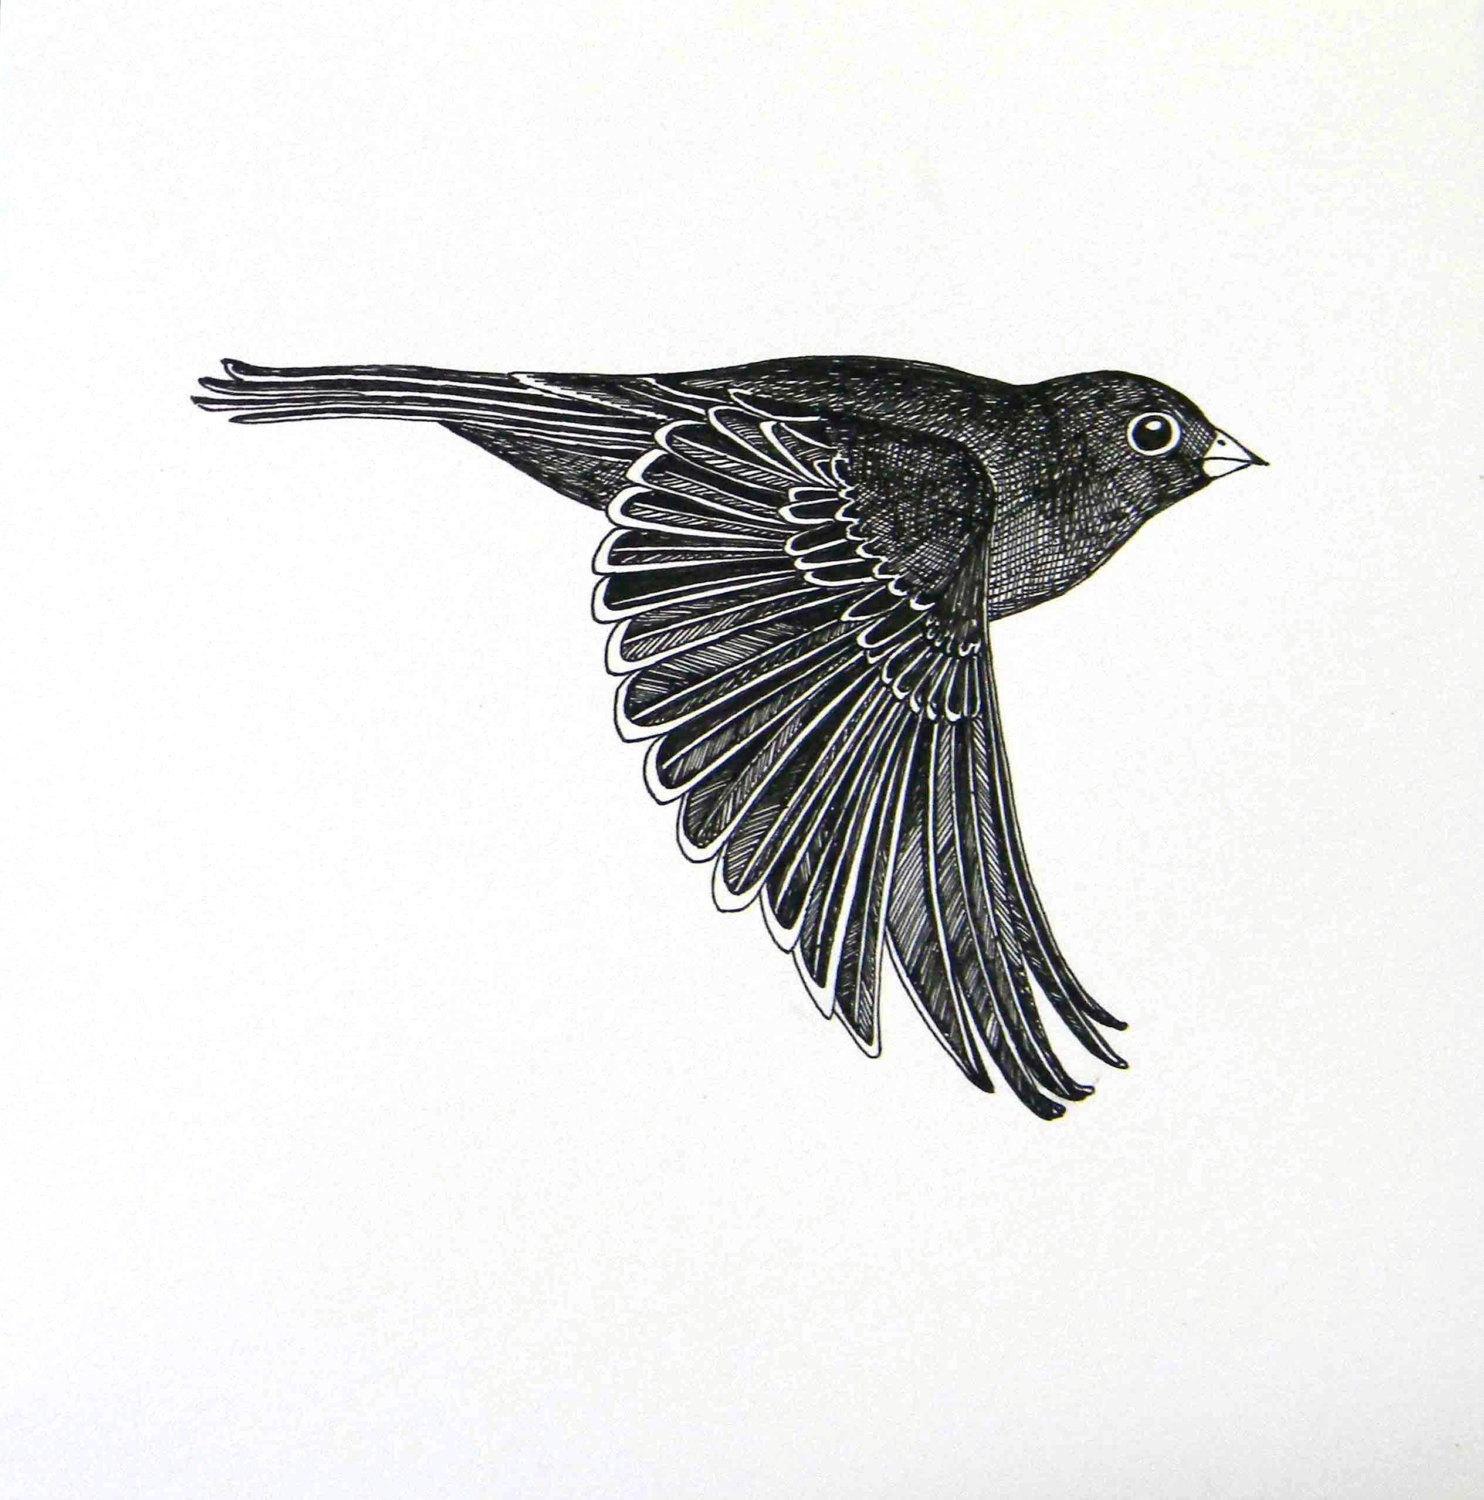 It is an image of Inventive Birds Flying Drawing